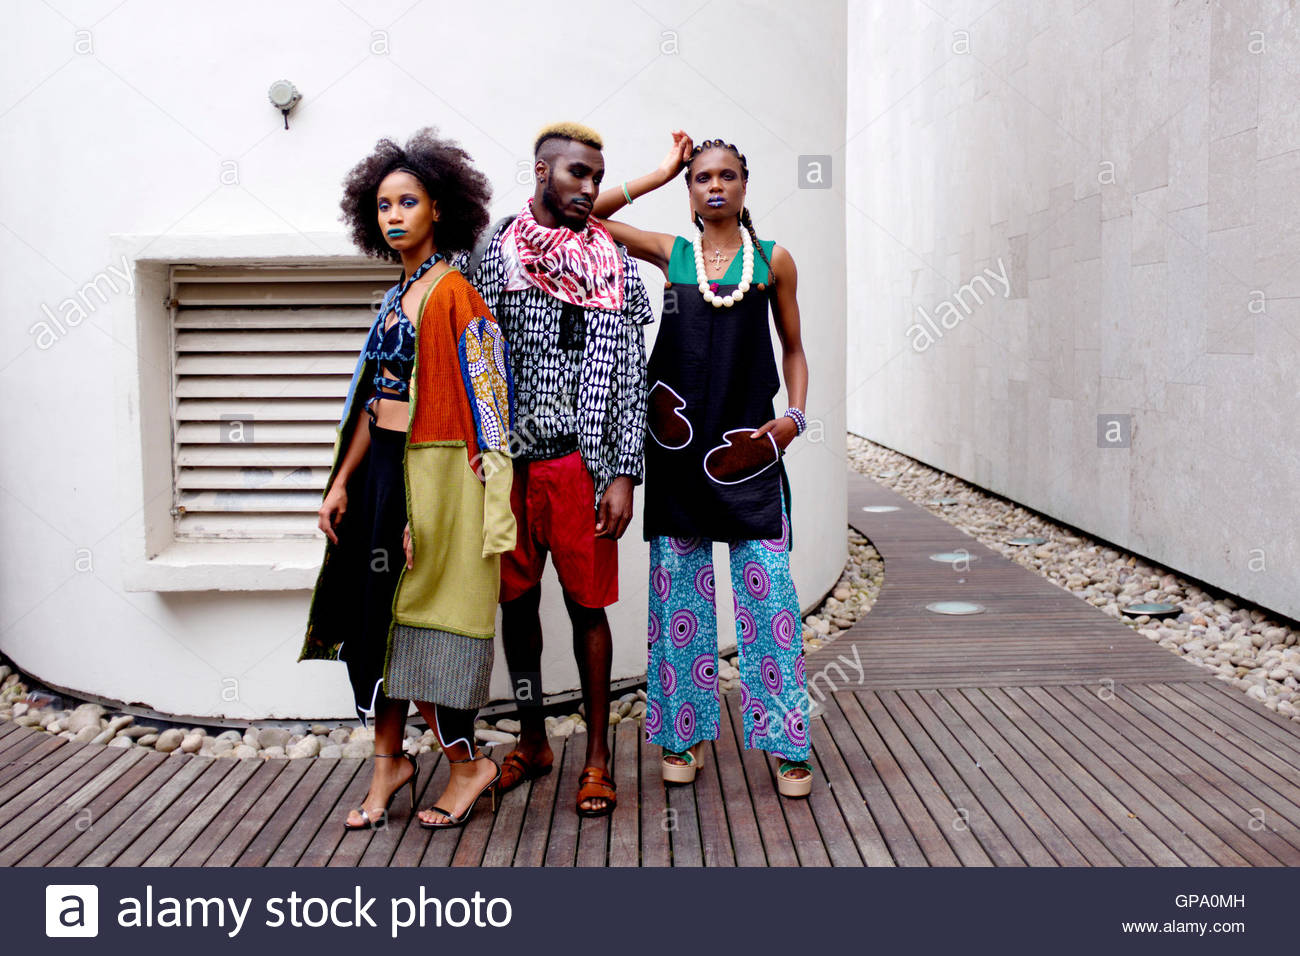 Models backstage at Africa Utopia Fashion Event Southbank London, England UK September 3 2016. - Stock Image